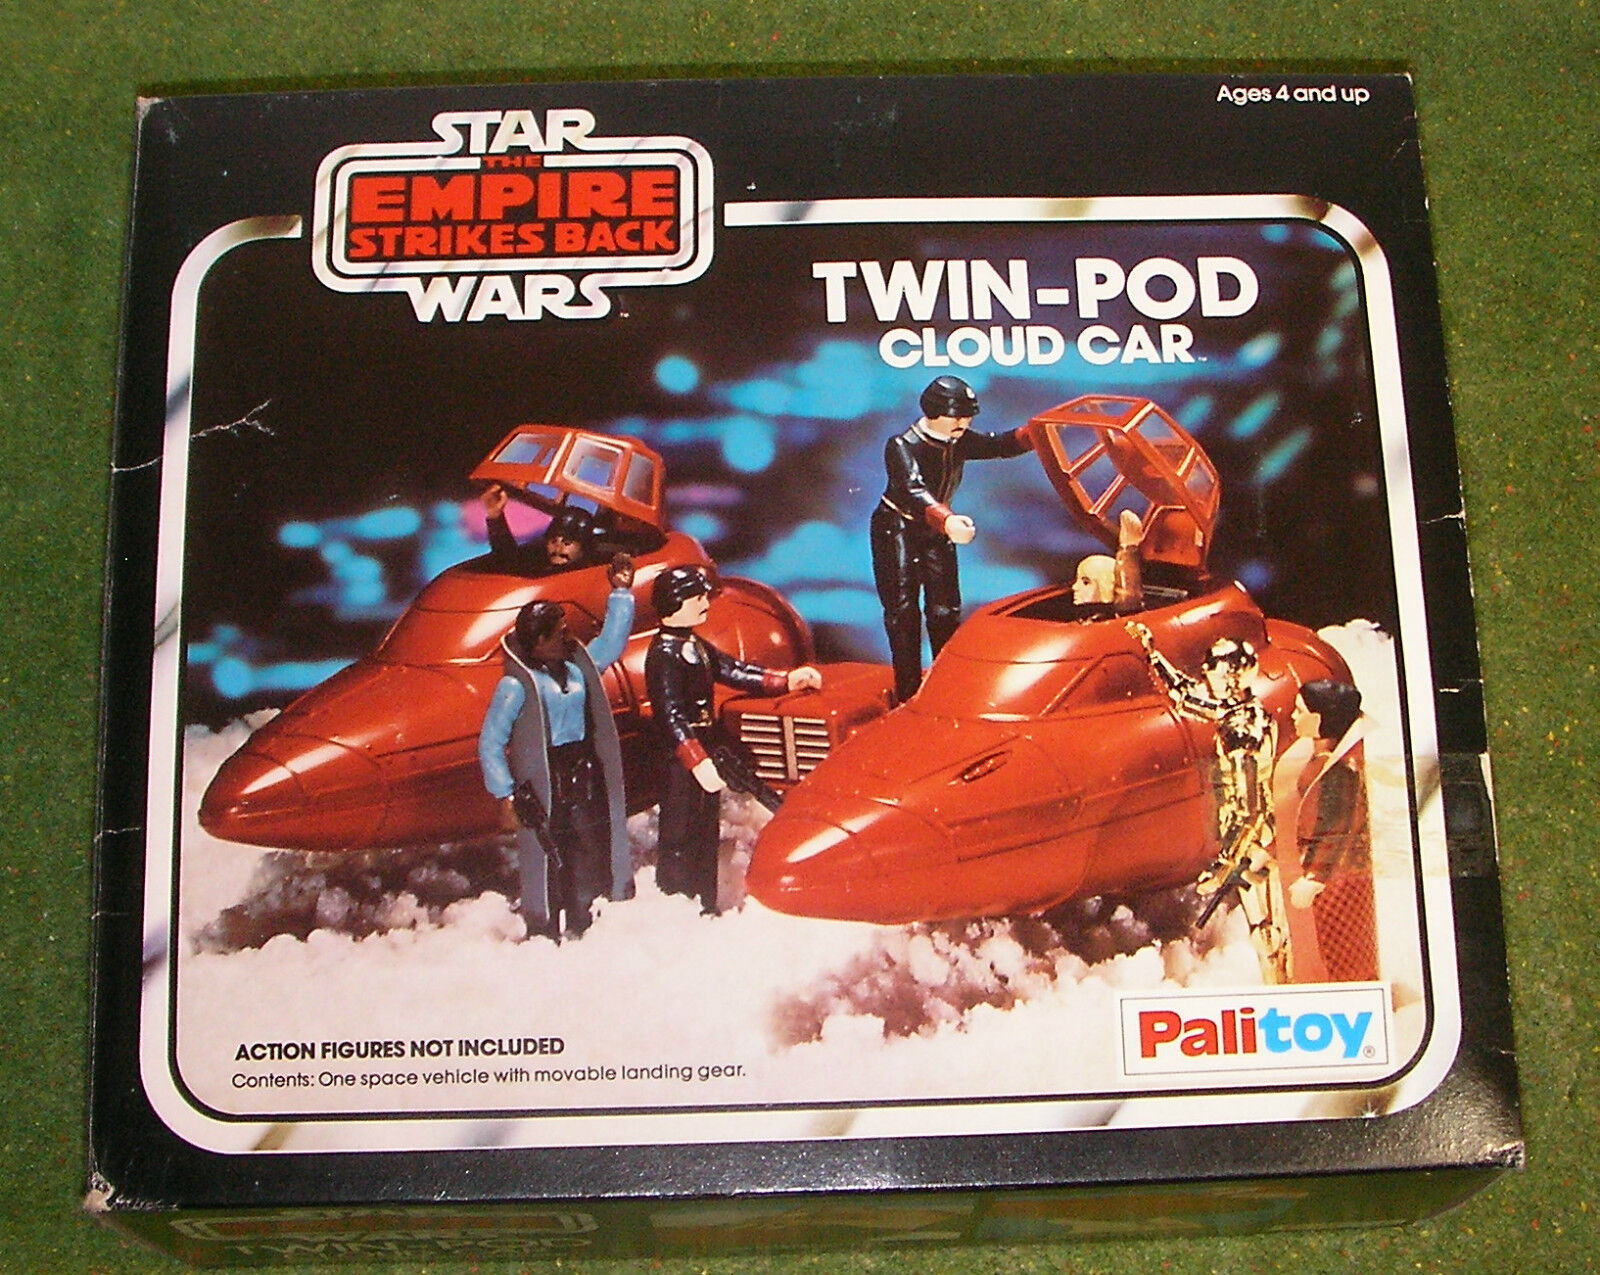 VINTAGE STAR WARS PALITOY L'impero colpisce ancora Twin-pod Cloud Car BOXED